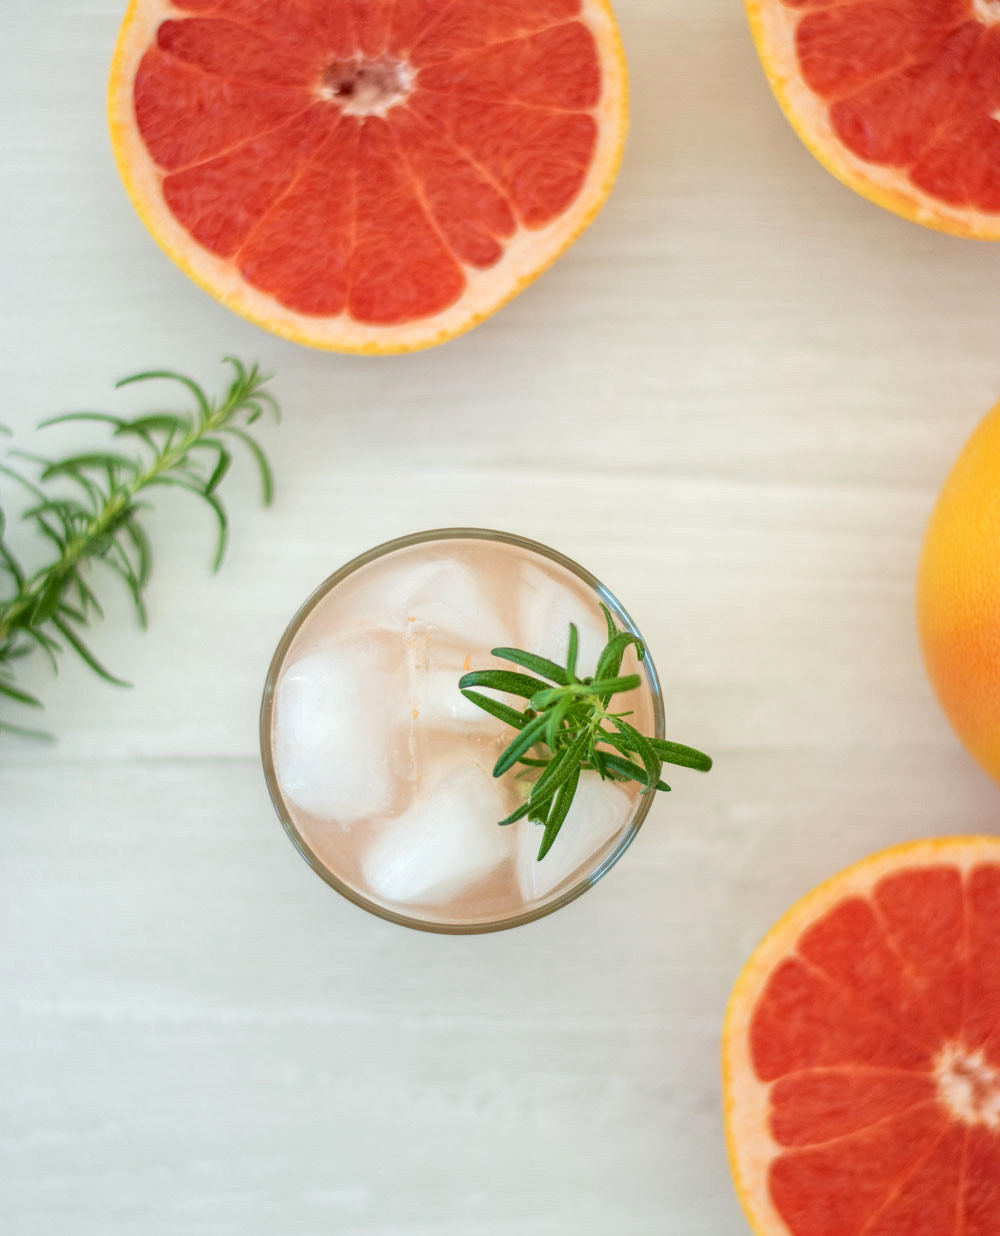 Easy and delicious Rosemary Greyhound Cocktail recipe. Three ingredient recipe for a delicious citrus cocktail using fresh grapefruits #cocktail #rosemarycocktail #greyhoundcocktail #citrusseason #inseason #pinkdrink